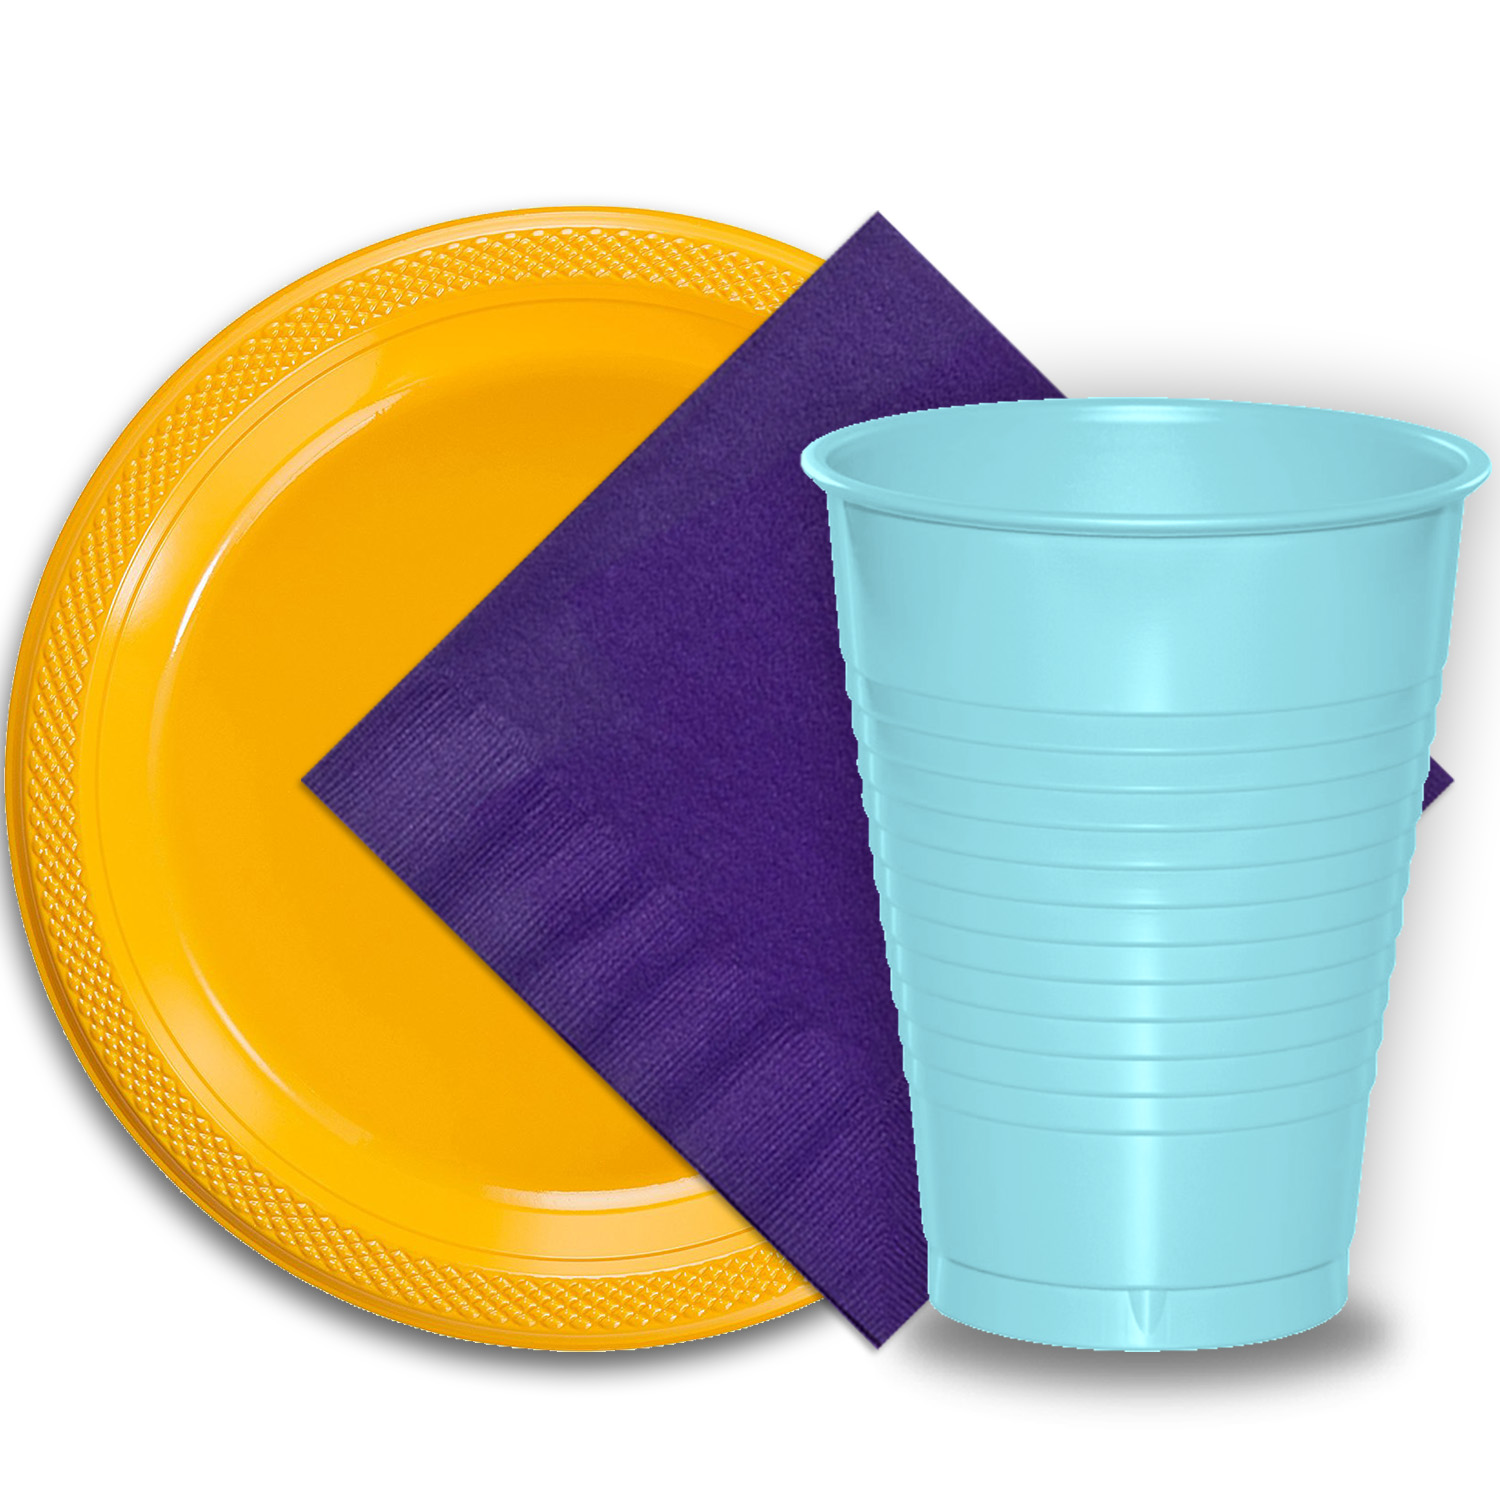 "50 Yellow Plastic Plates (9""), 50 Light Blue Plastic Cups (12 oz.), and 50 Purple Paper Napkins, Dazzelling Colored Disposable Party Supplies Tableware Set for Fifty Guests."